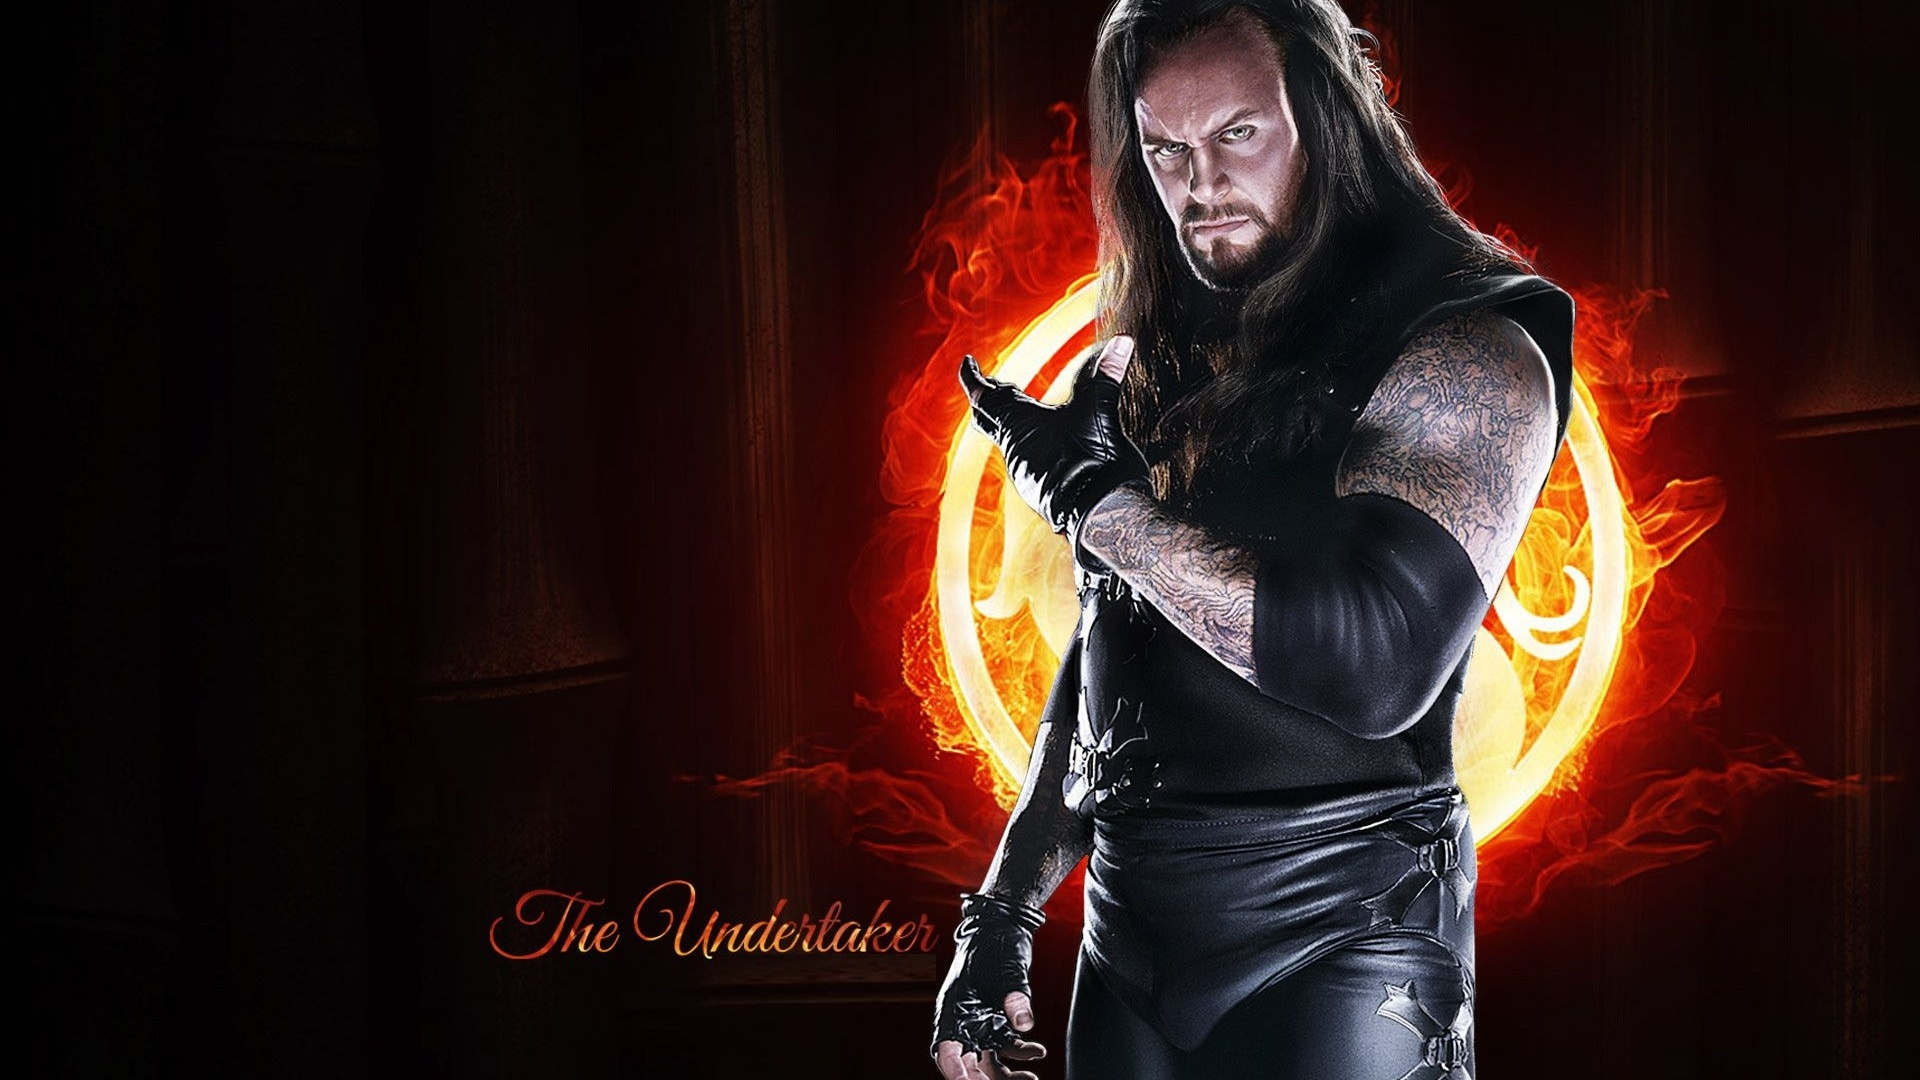 Undertaker cool wallpaper